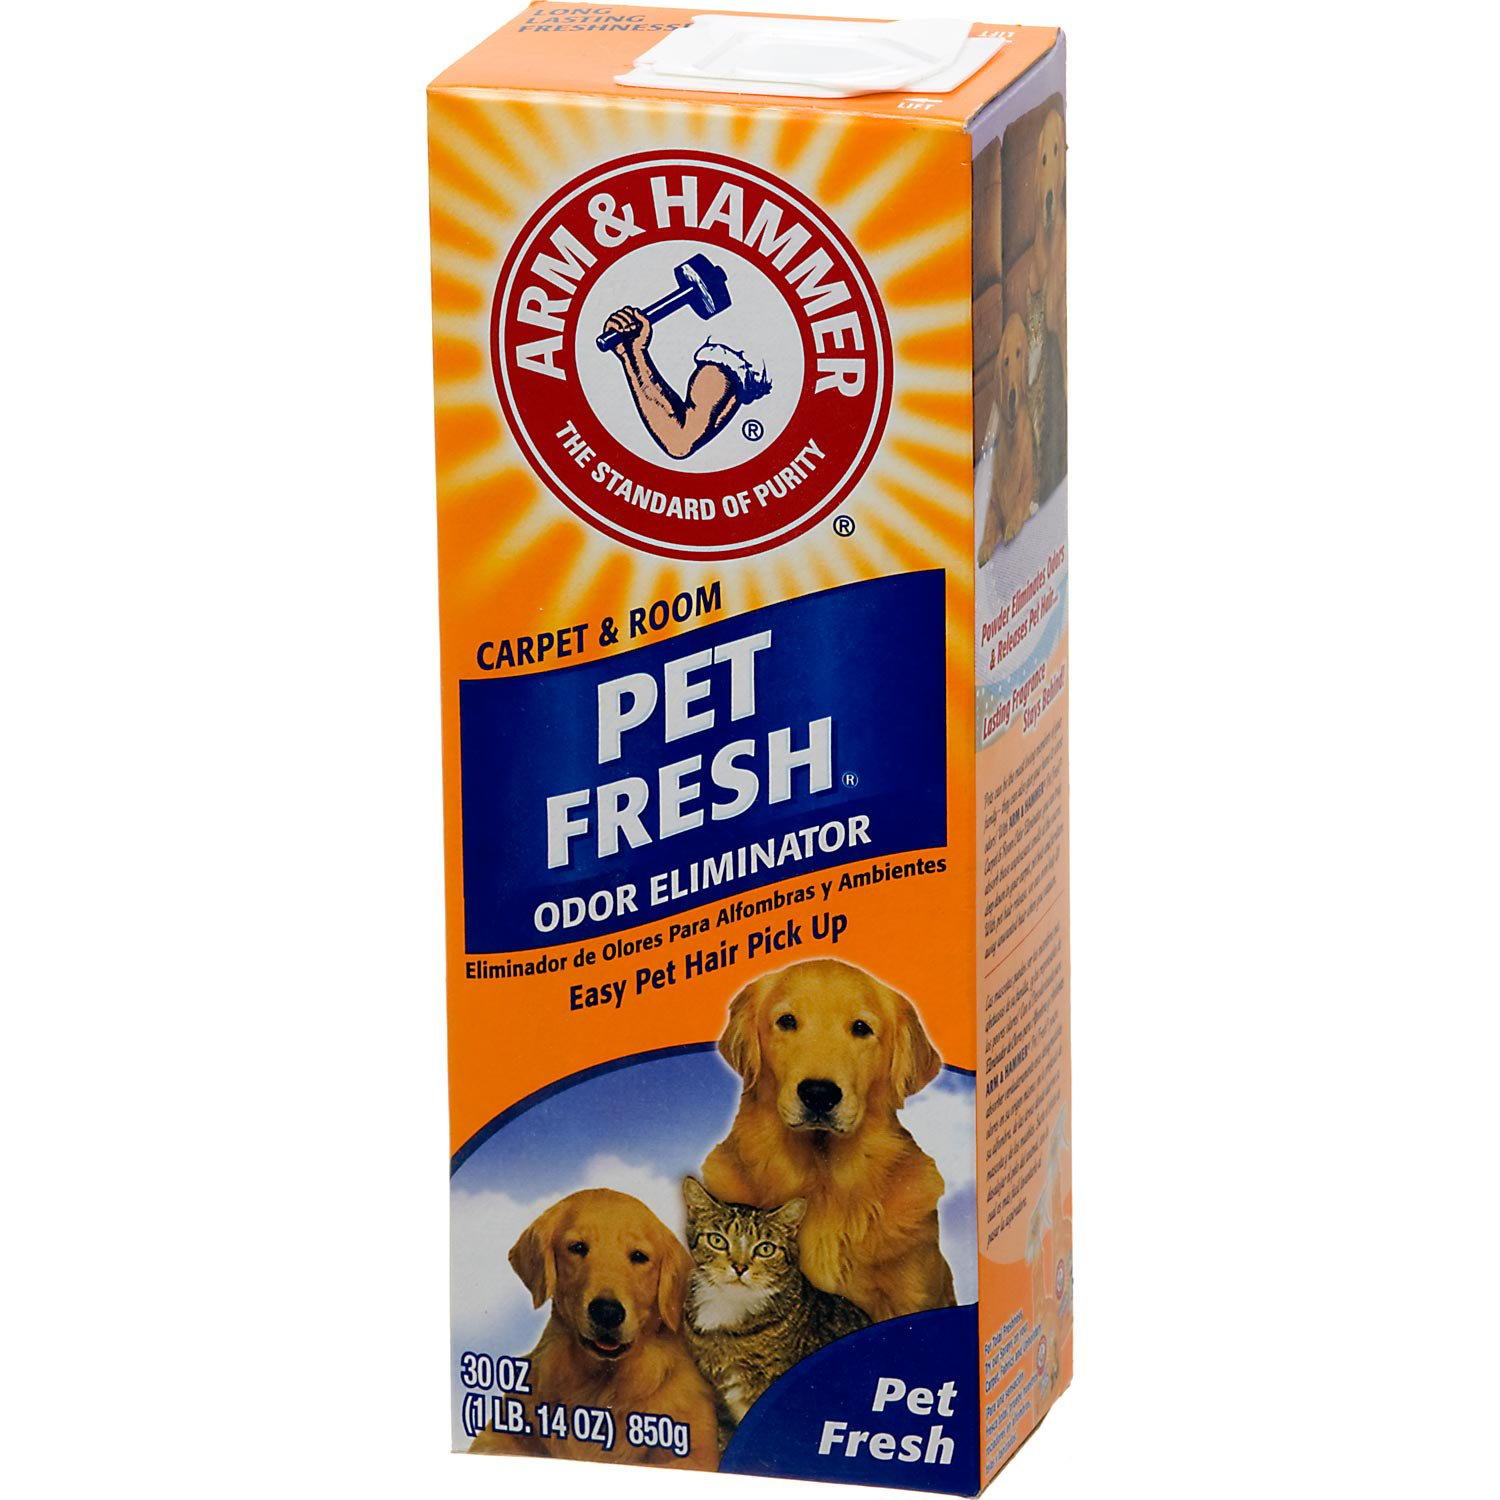 Dog Smell Of Rug: Arm & Hammer Carpet & Room Pet Fresh Odor Eliminator